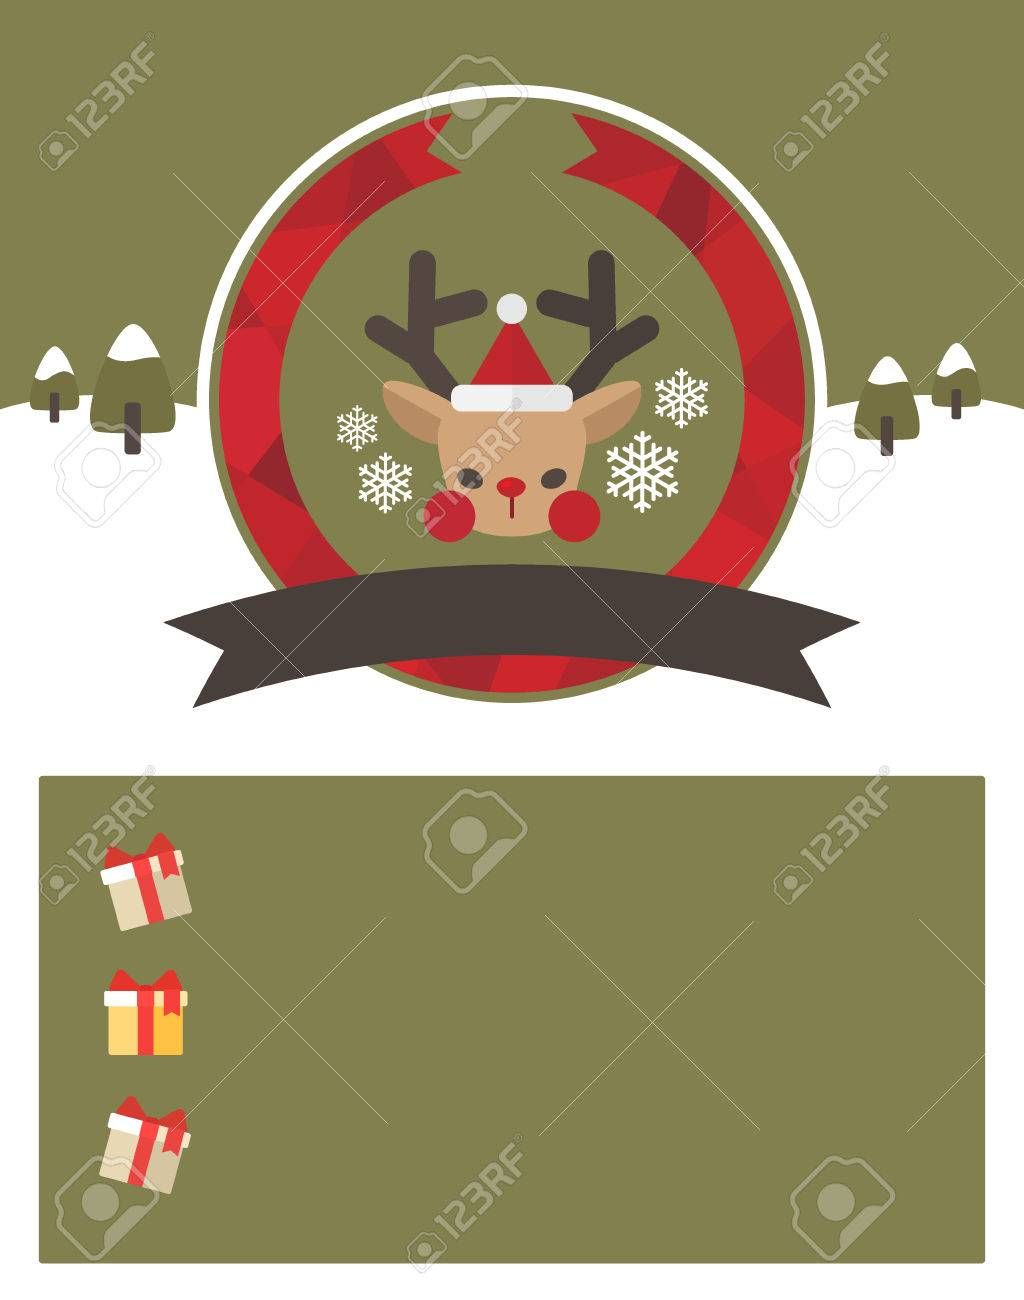 Christmas Event Template Royalty Free Cliparts Vectors And Stock